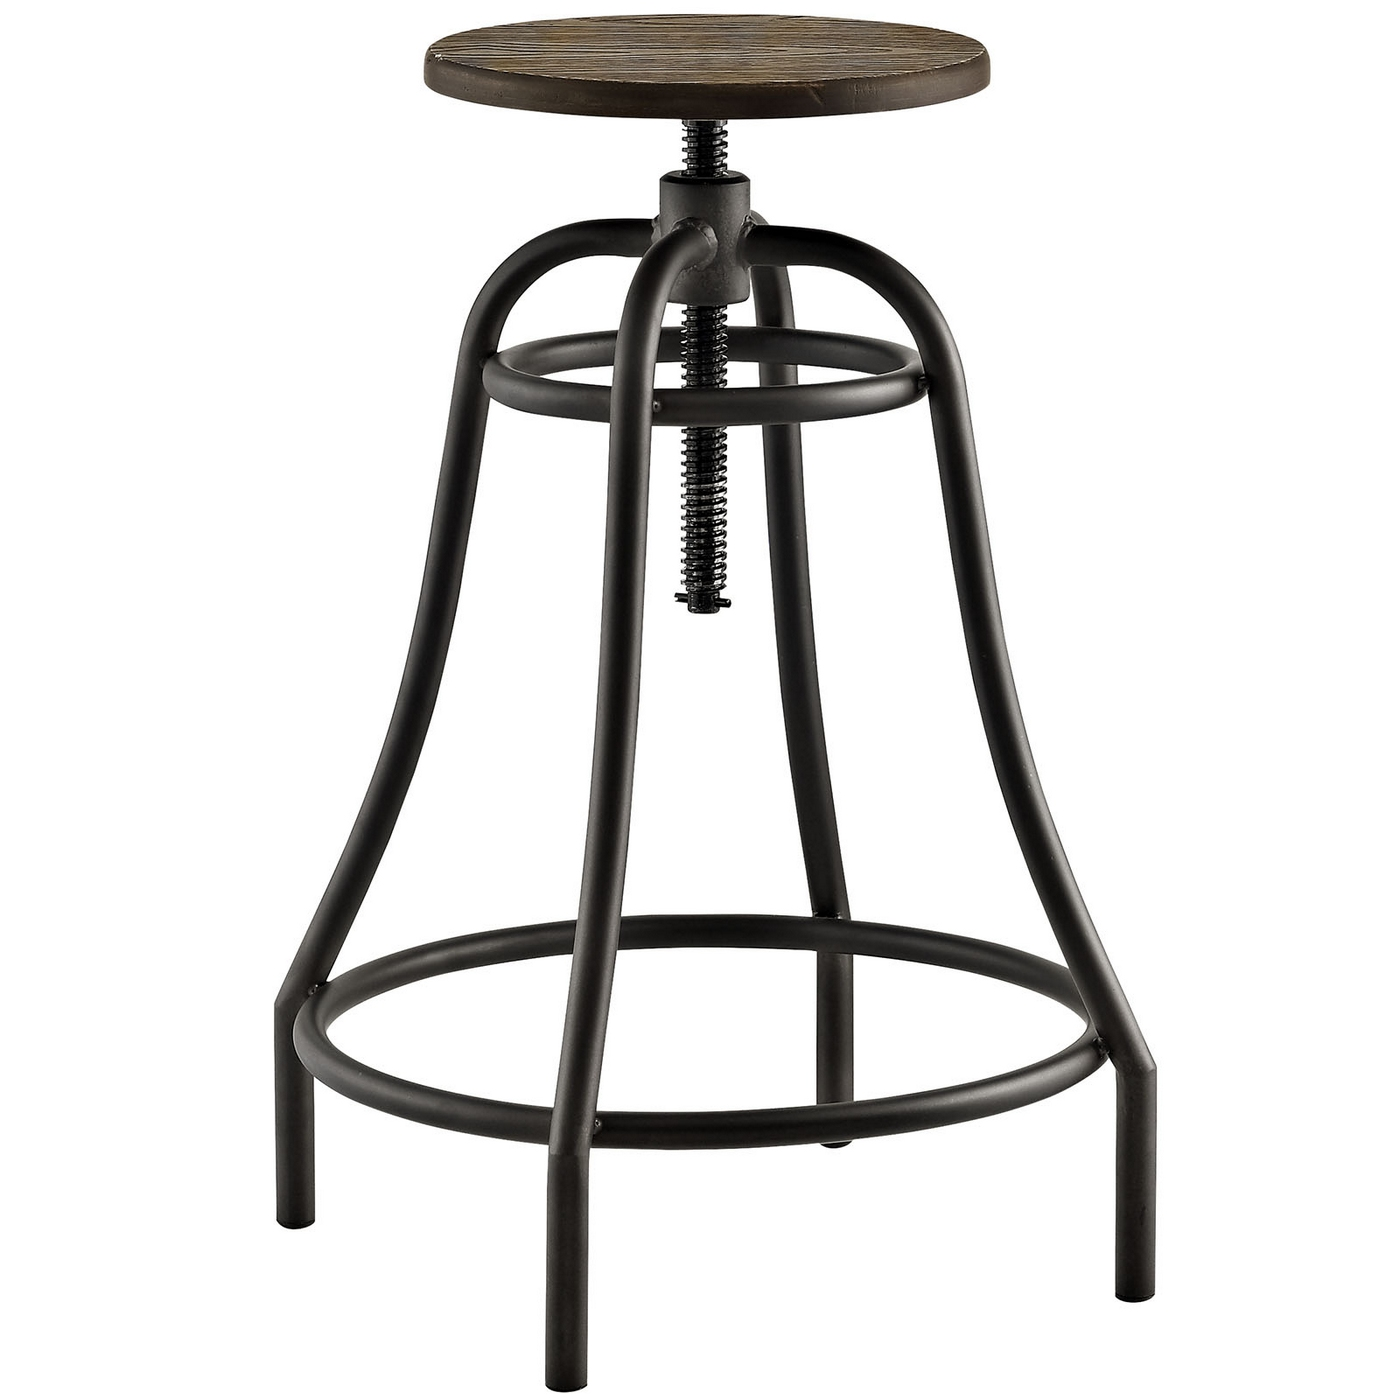 toll rustic industrial round steel bar stool with bamboo seat brown. Black Bedroom Furniture Sets. Home Design Ideas